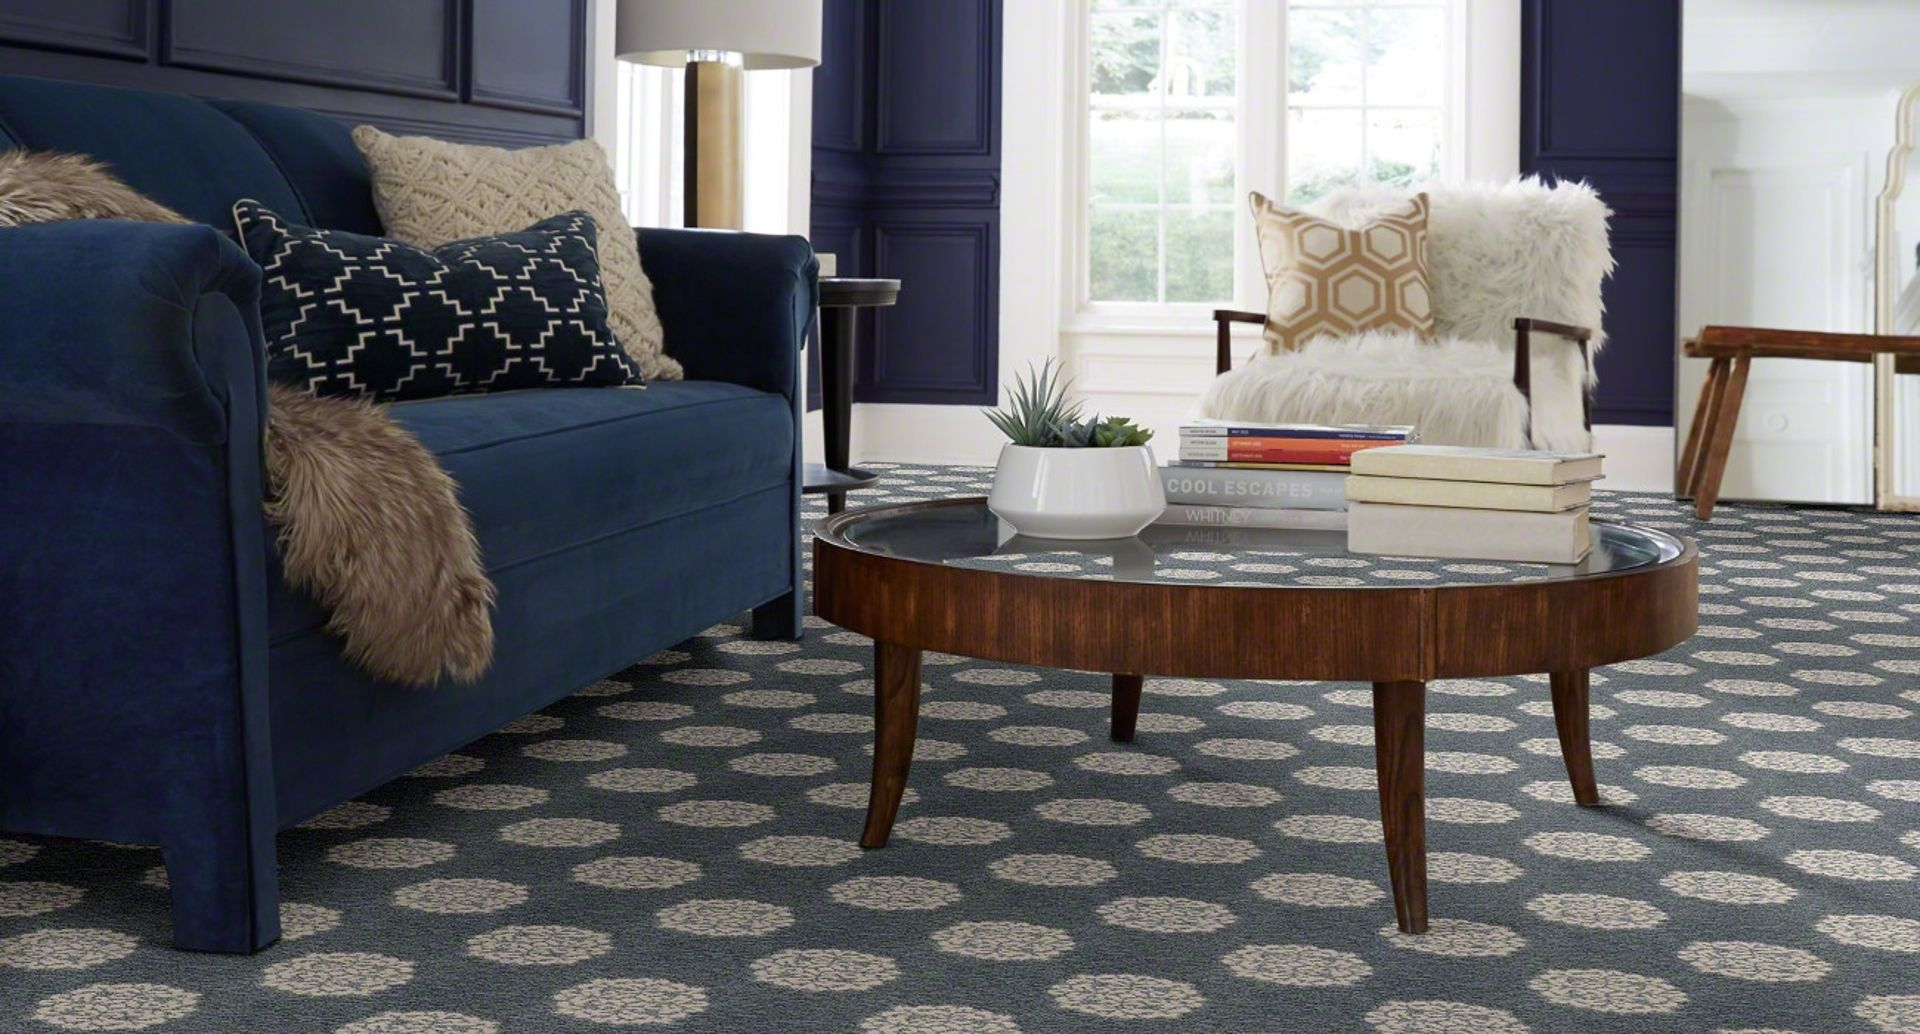 Fashion carpets norwood ma 81